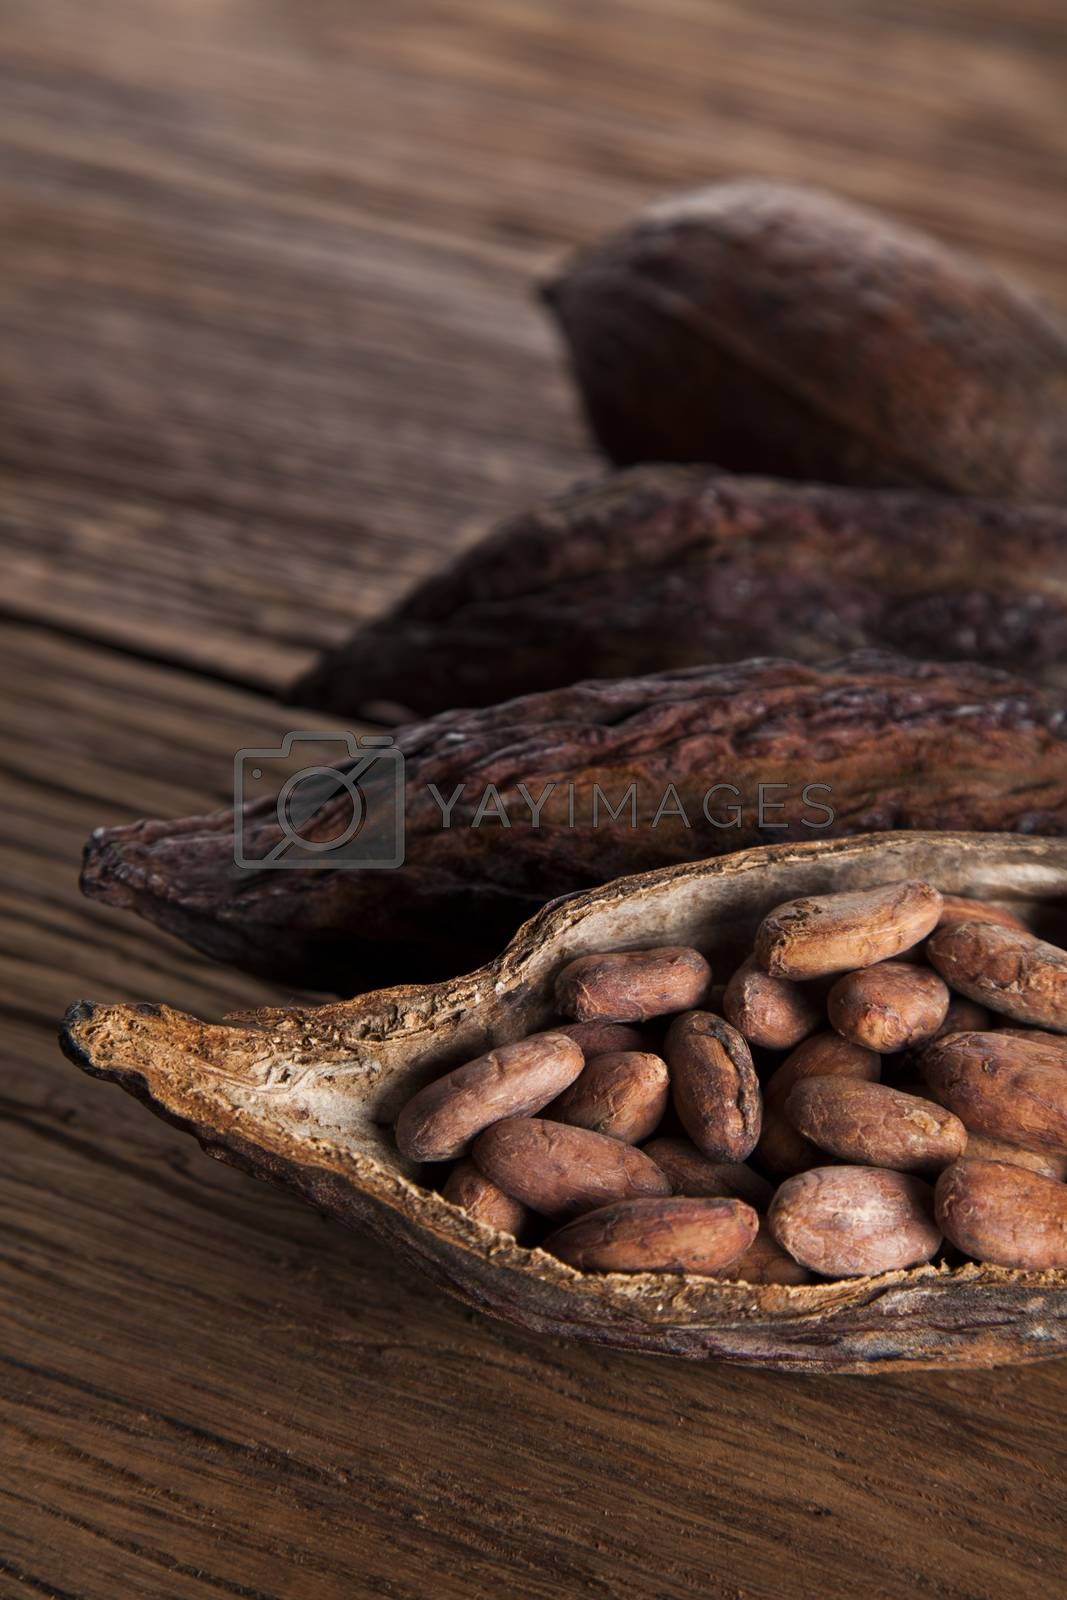 Royalty free image of Cocoa pod on wooden background by JanPietruszka